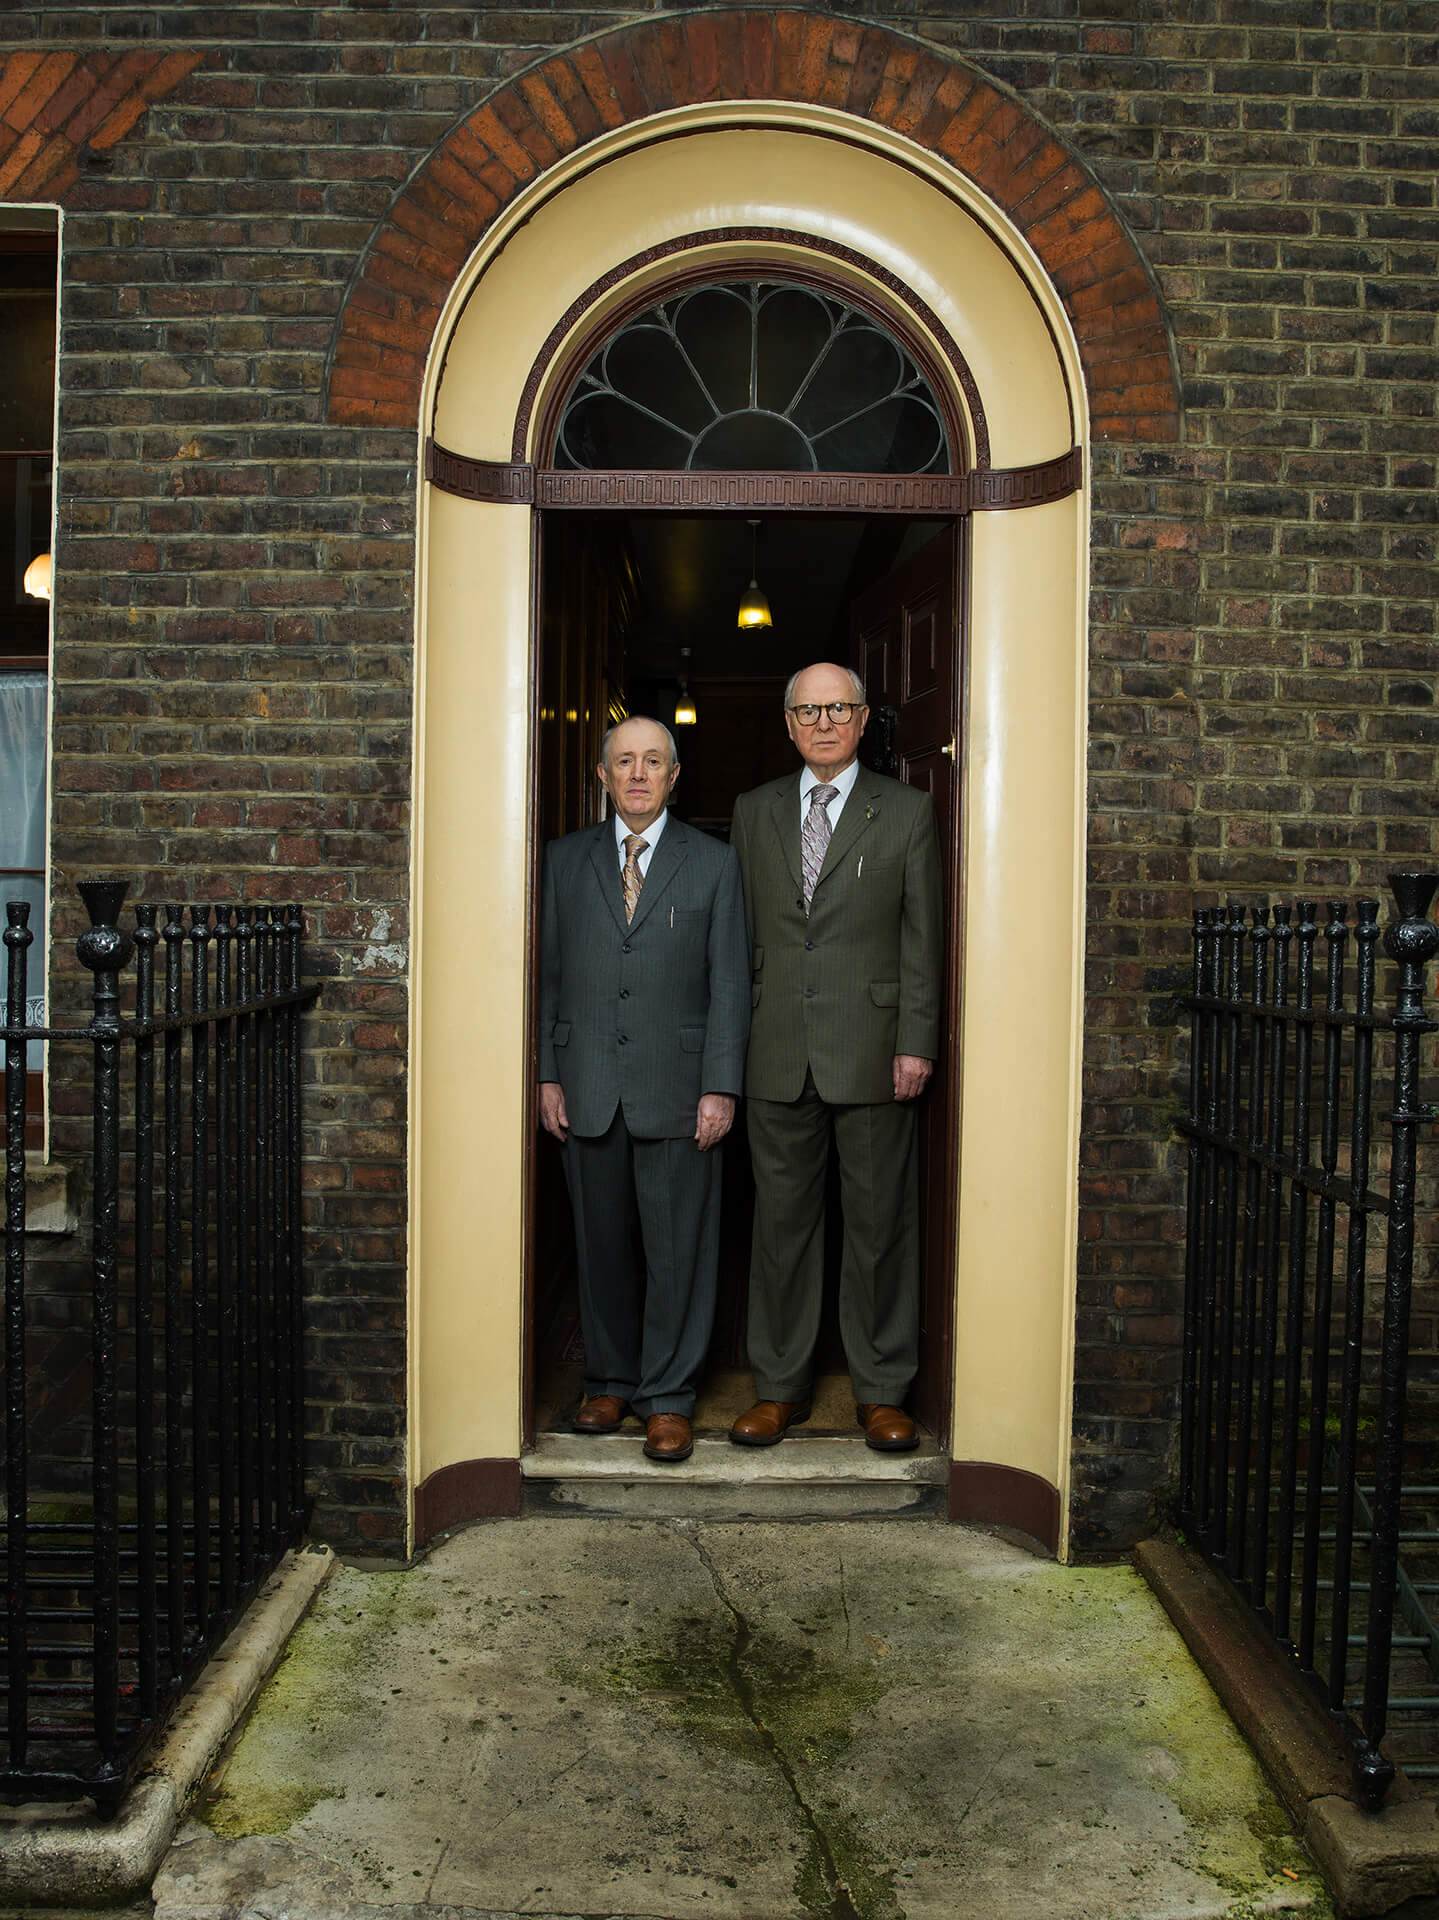 Gilbert and George, Gilbert, George, Tom Oldham, London, East London, Photography, Film, Hasselblad, Portrait, Agency, WeAreShuffle, The Longest Day, Artists,